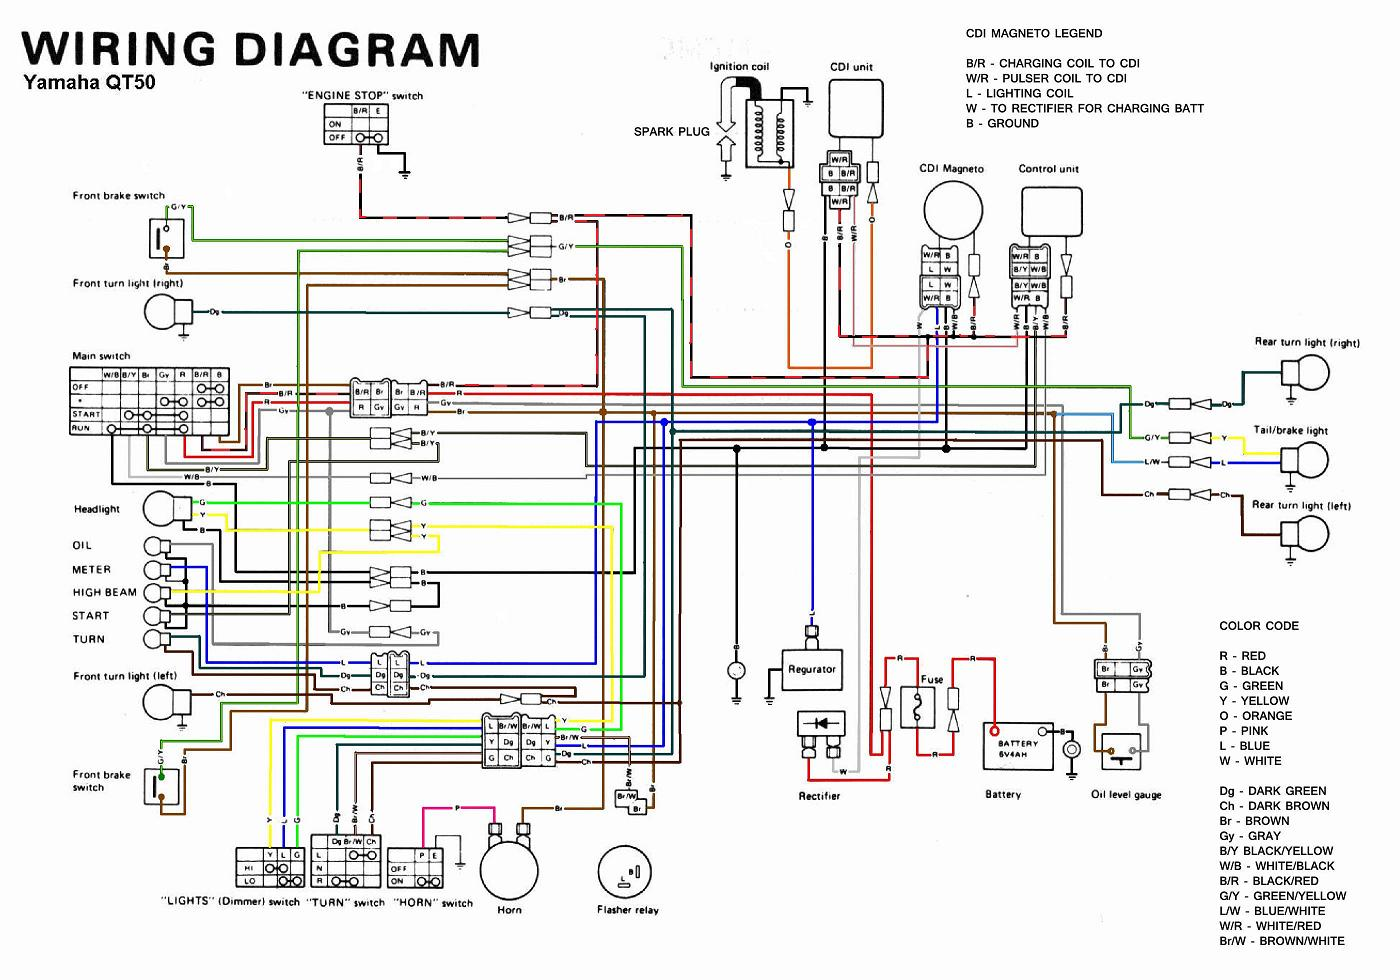 Yamaha Wiring Schematic Data Wiring Schema Accessory Wiring Diagram 100 V  Motor Wiring Diagram